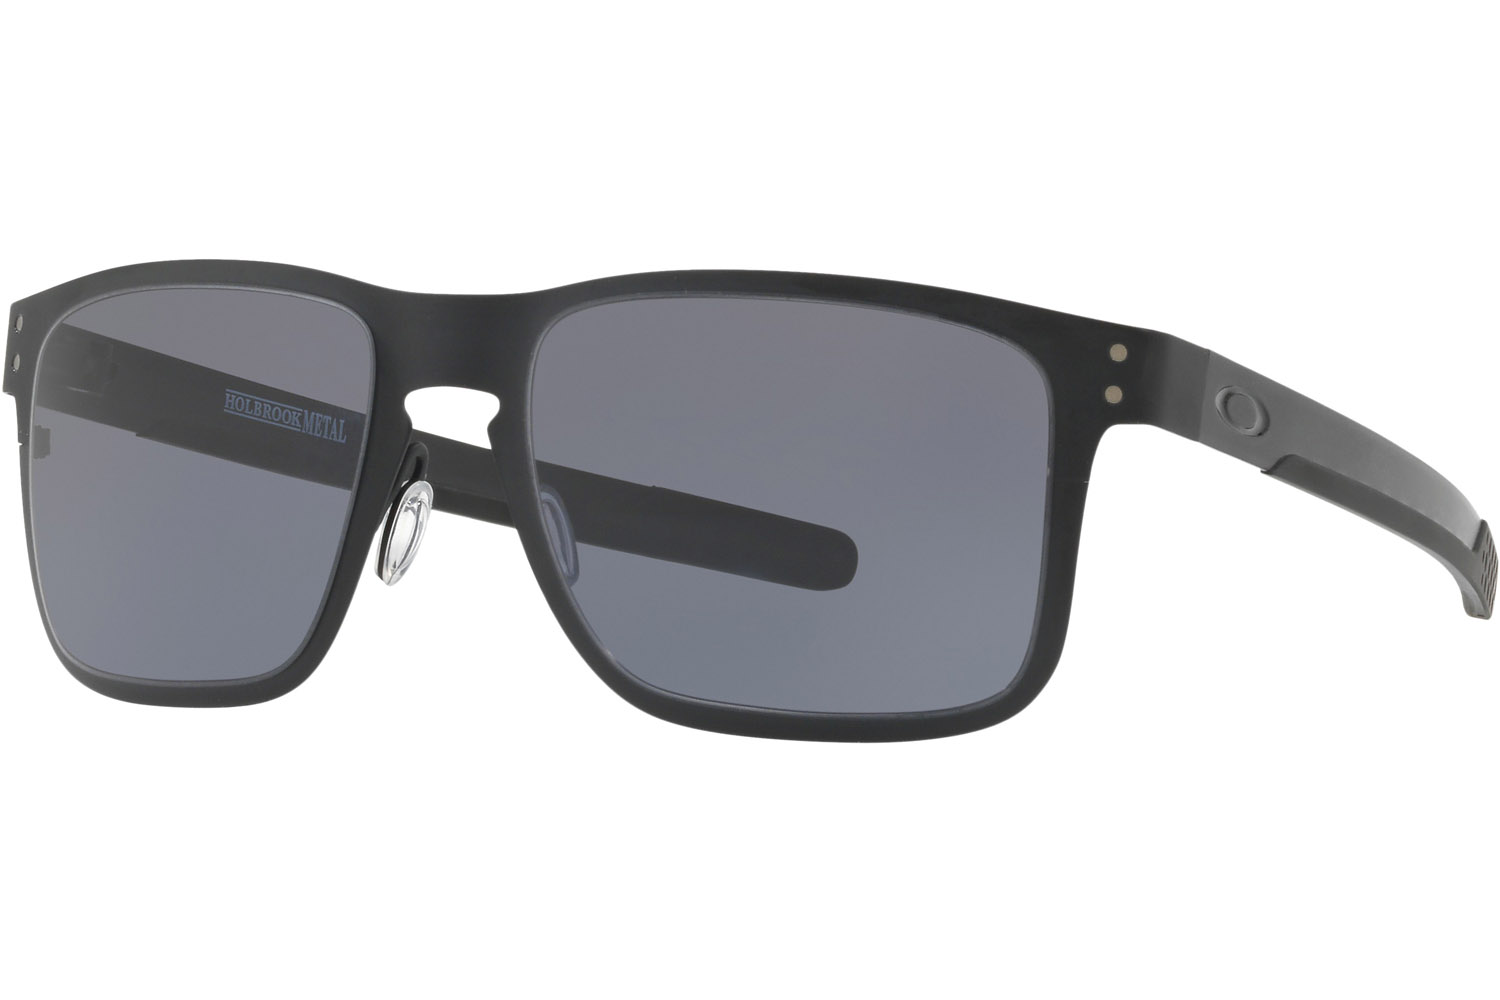 0339d9e7cb Shop Sunglasses - Free Shipping on Many Items